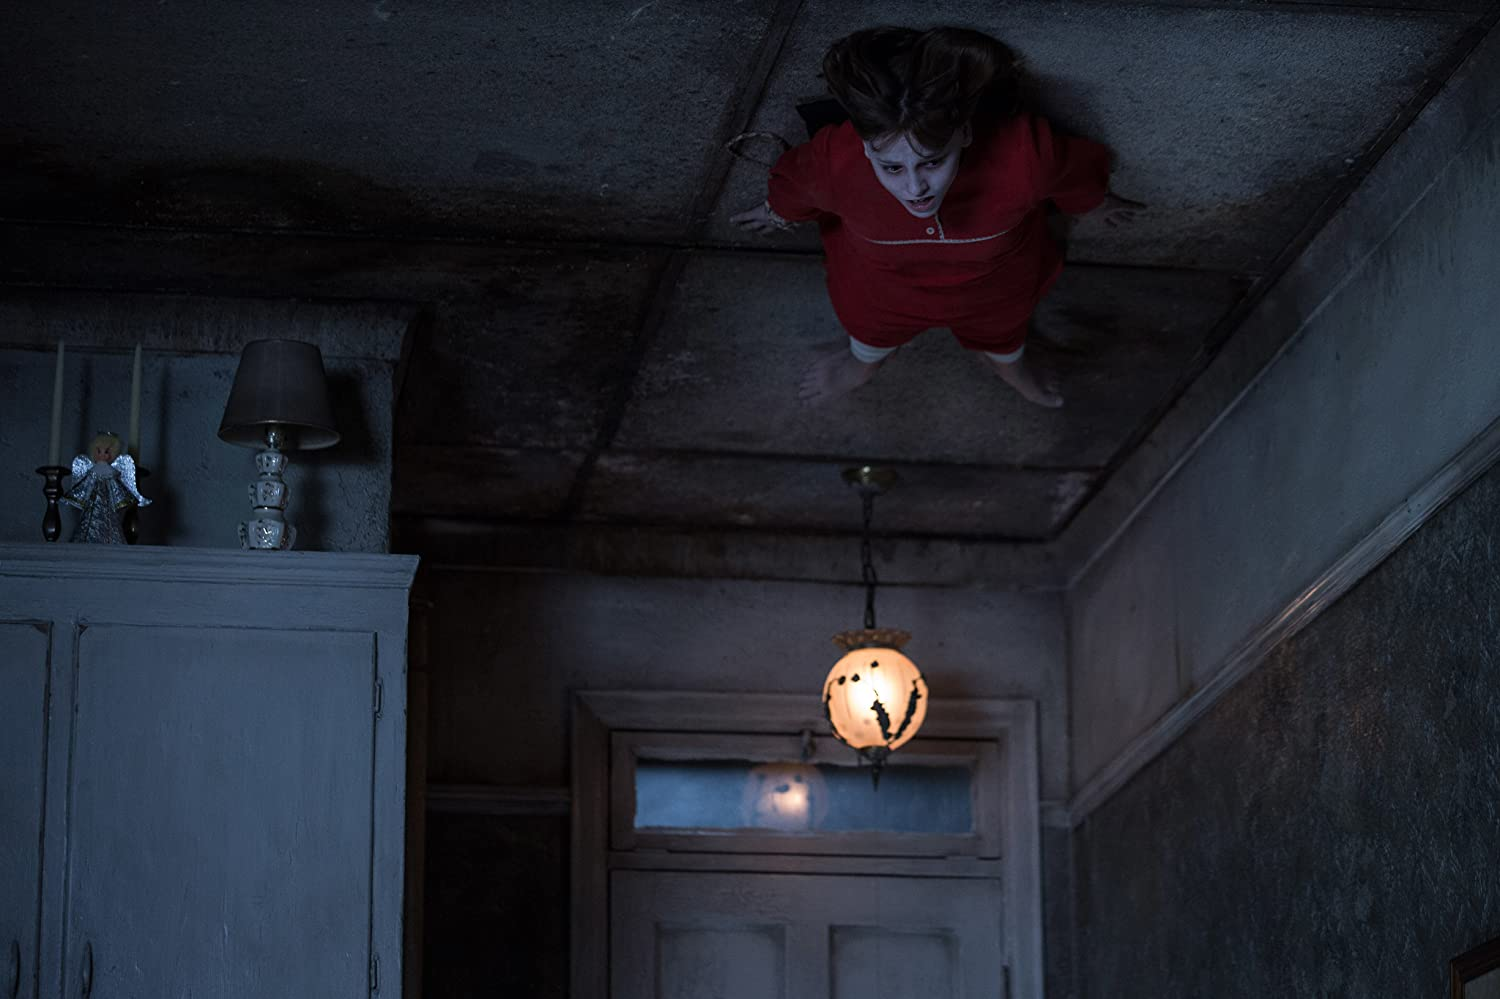 Madison Wolfe in The Conjuring 2 (2016)